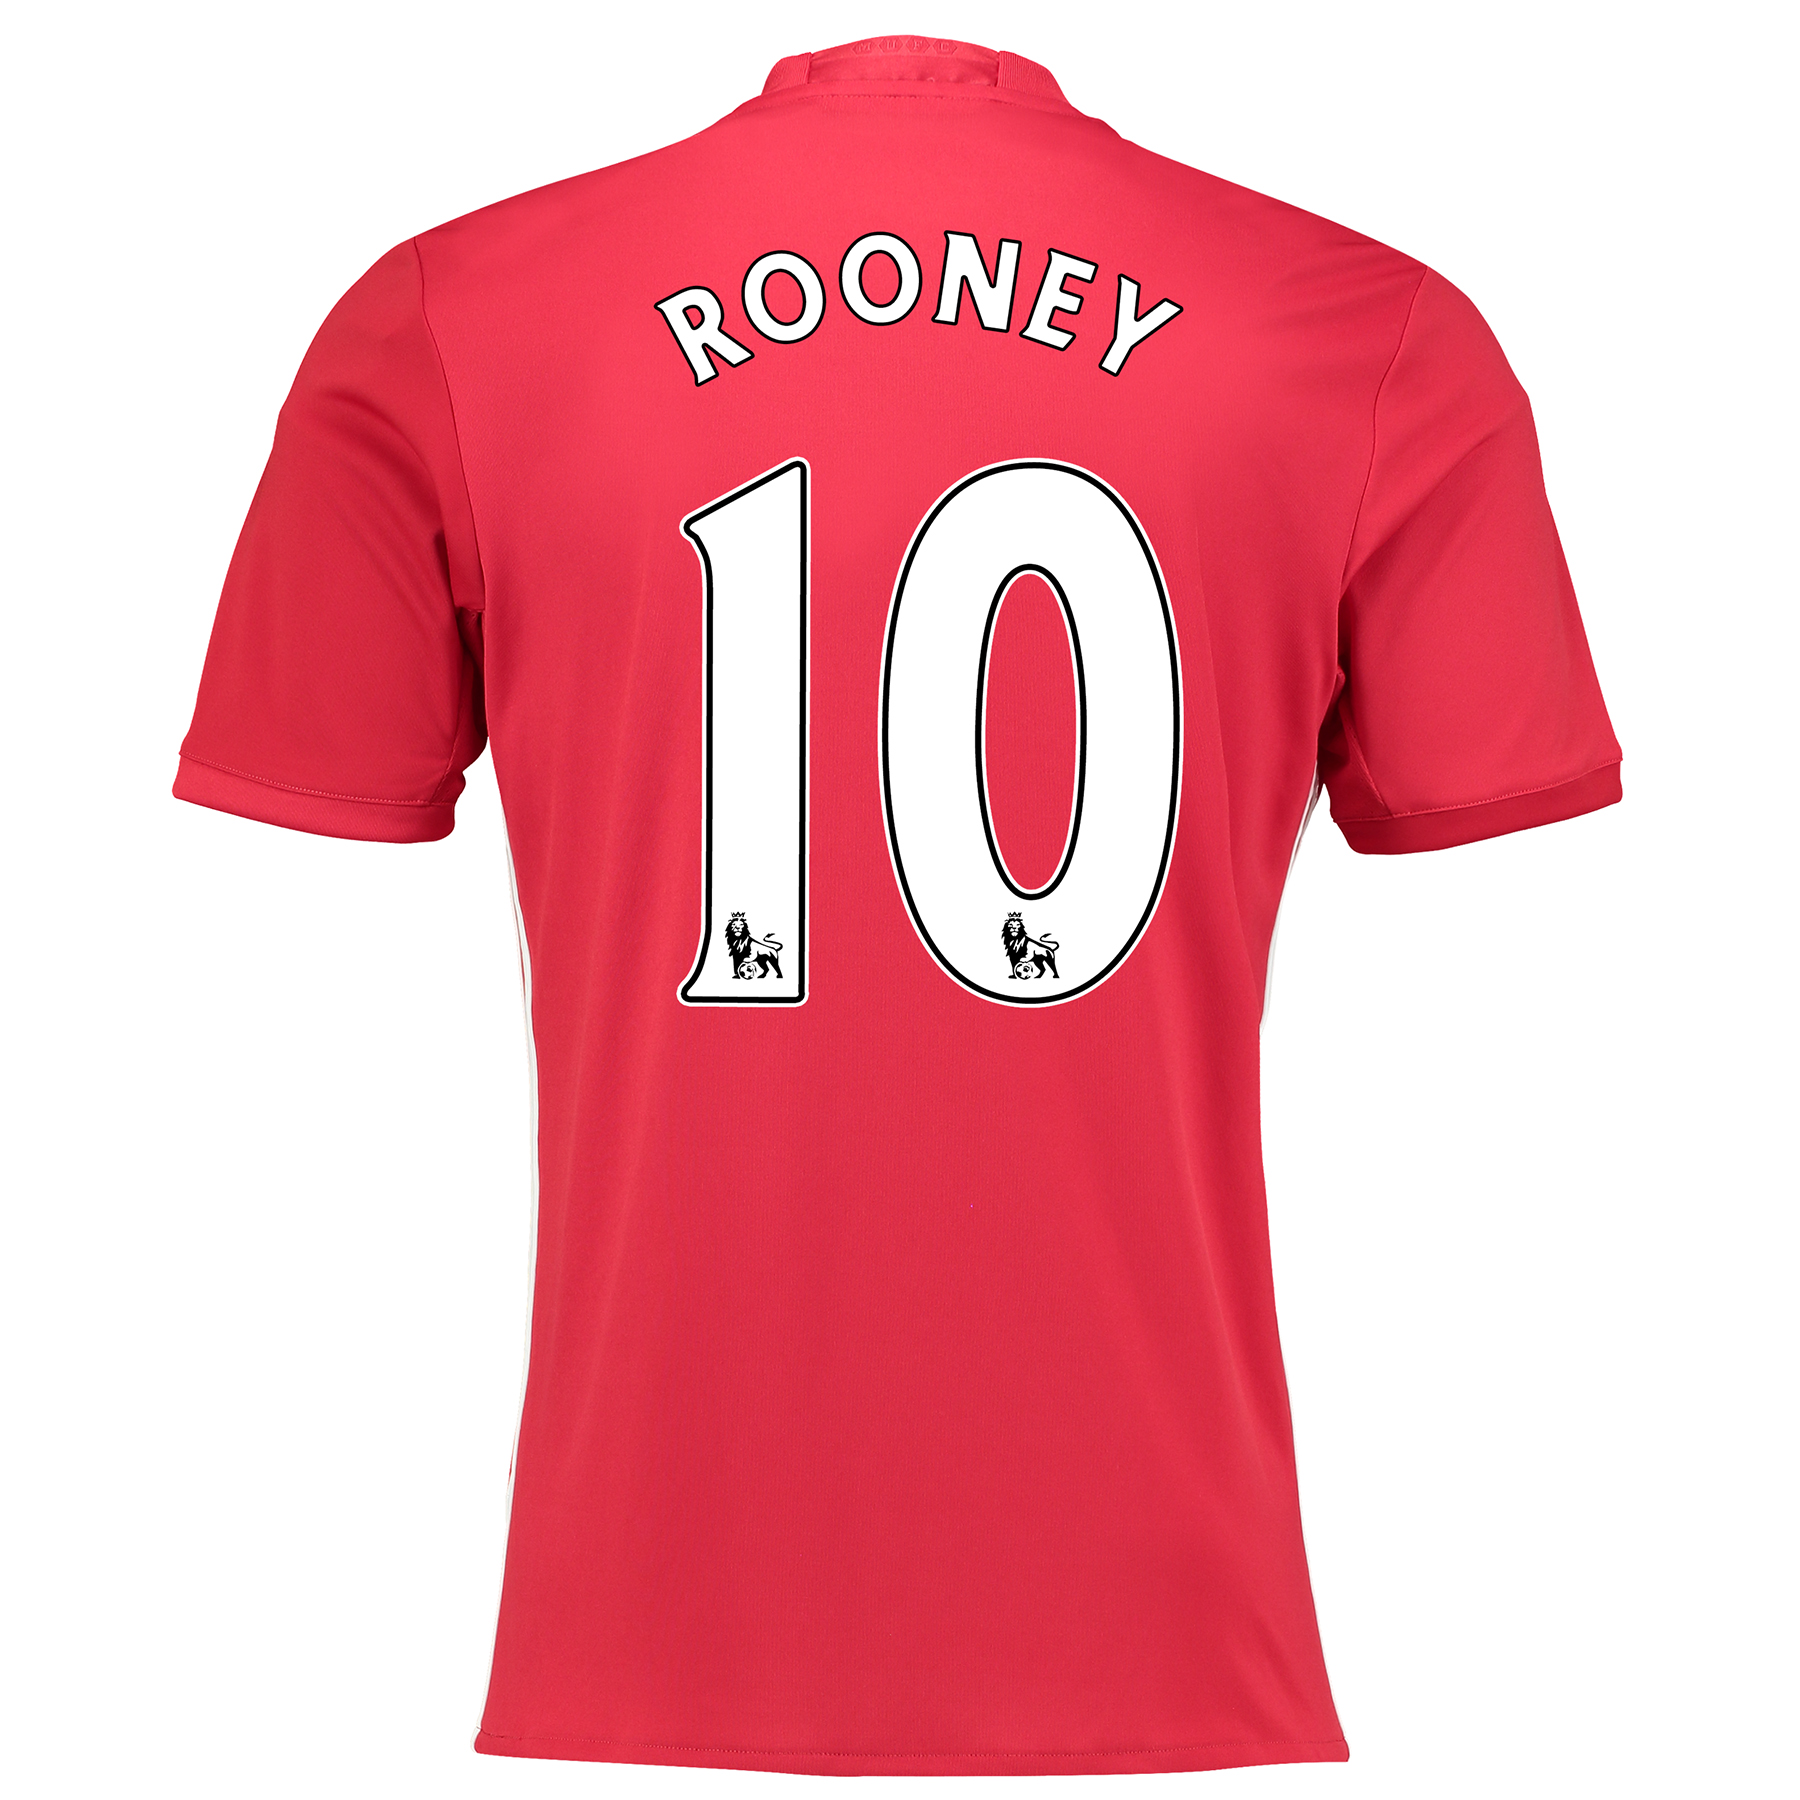 Maillot Manchester United Domicile 2016-17 - Rooney 10